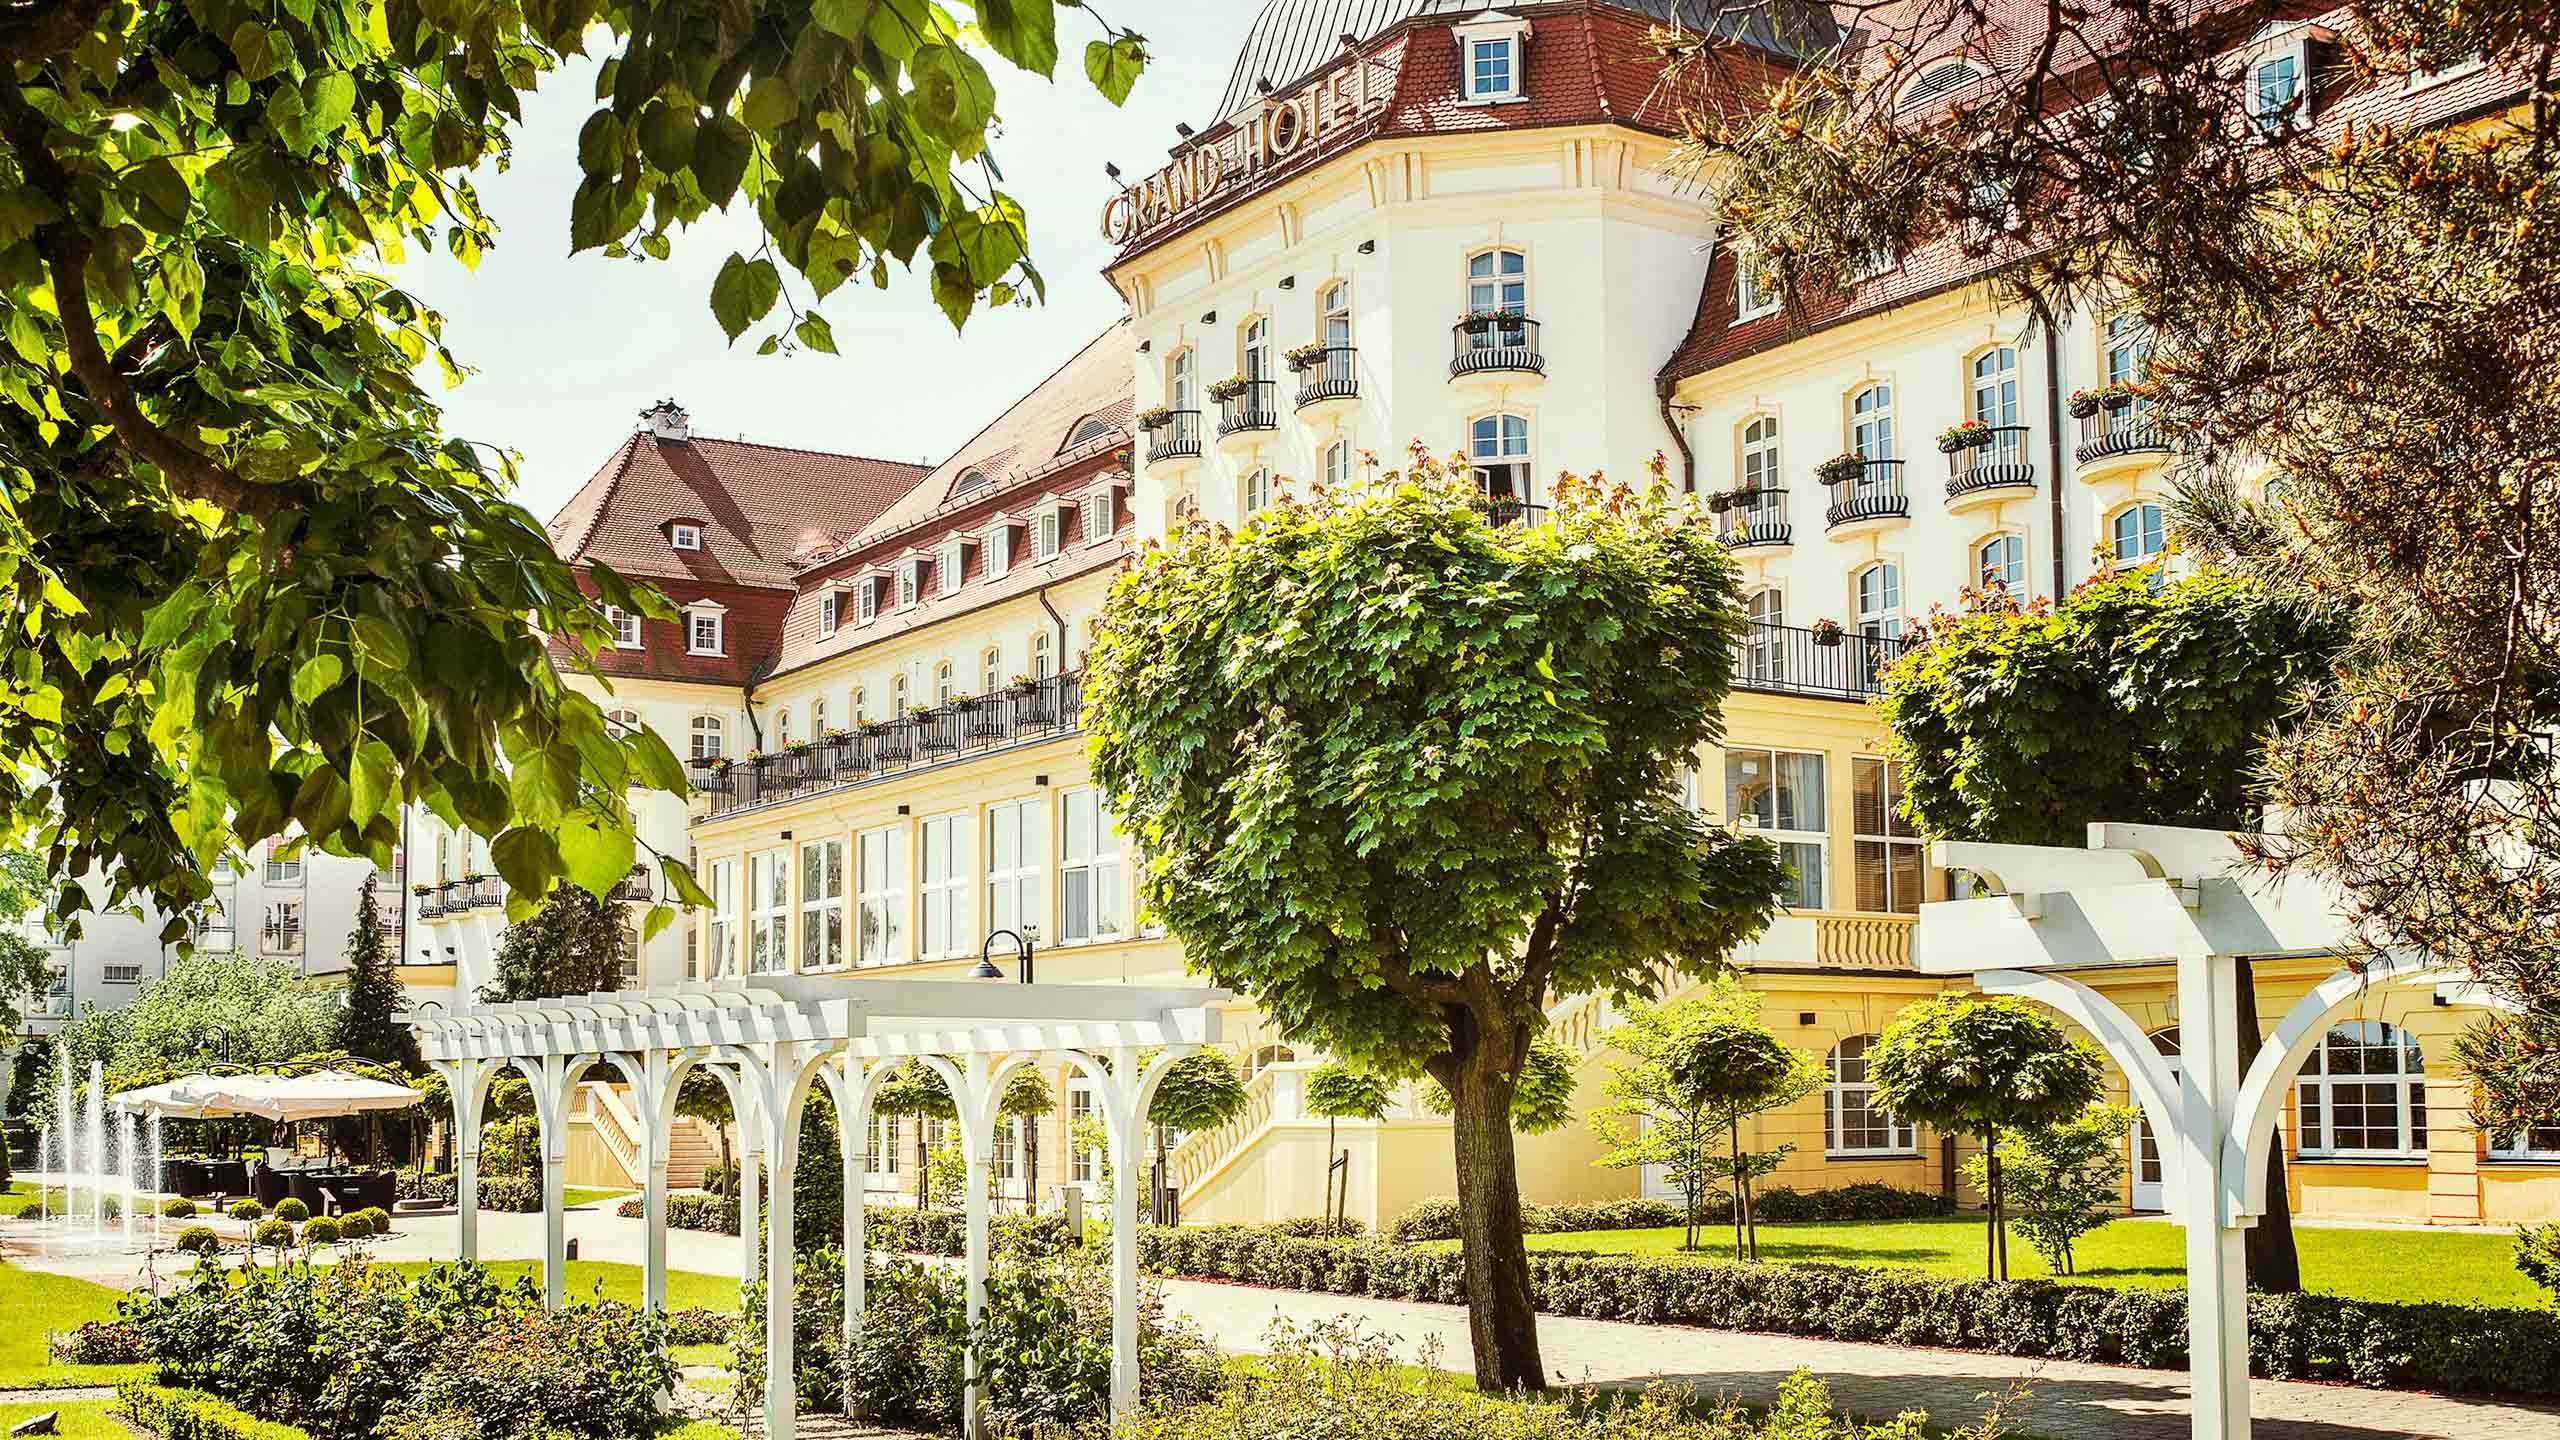 Luxury Hotel Sopot Sofitel Grand Sopot